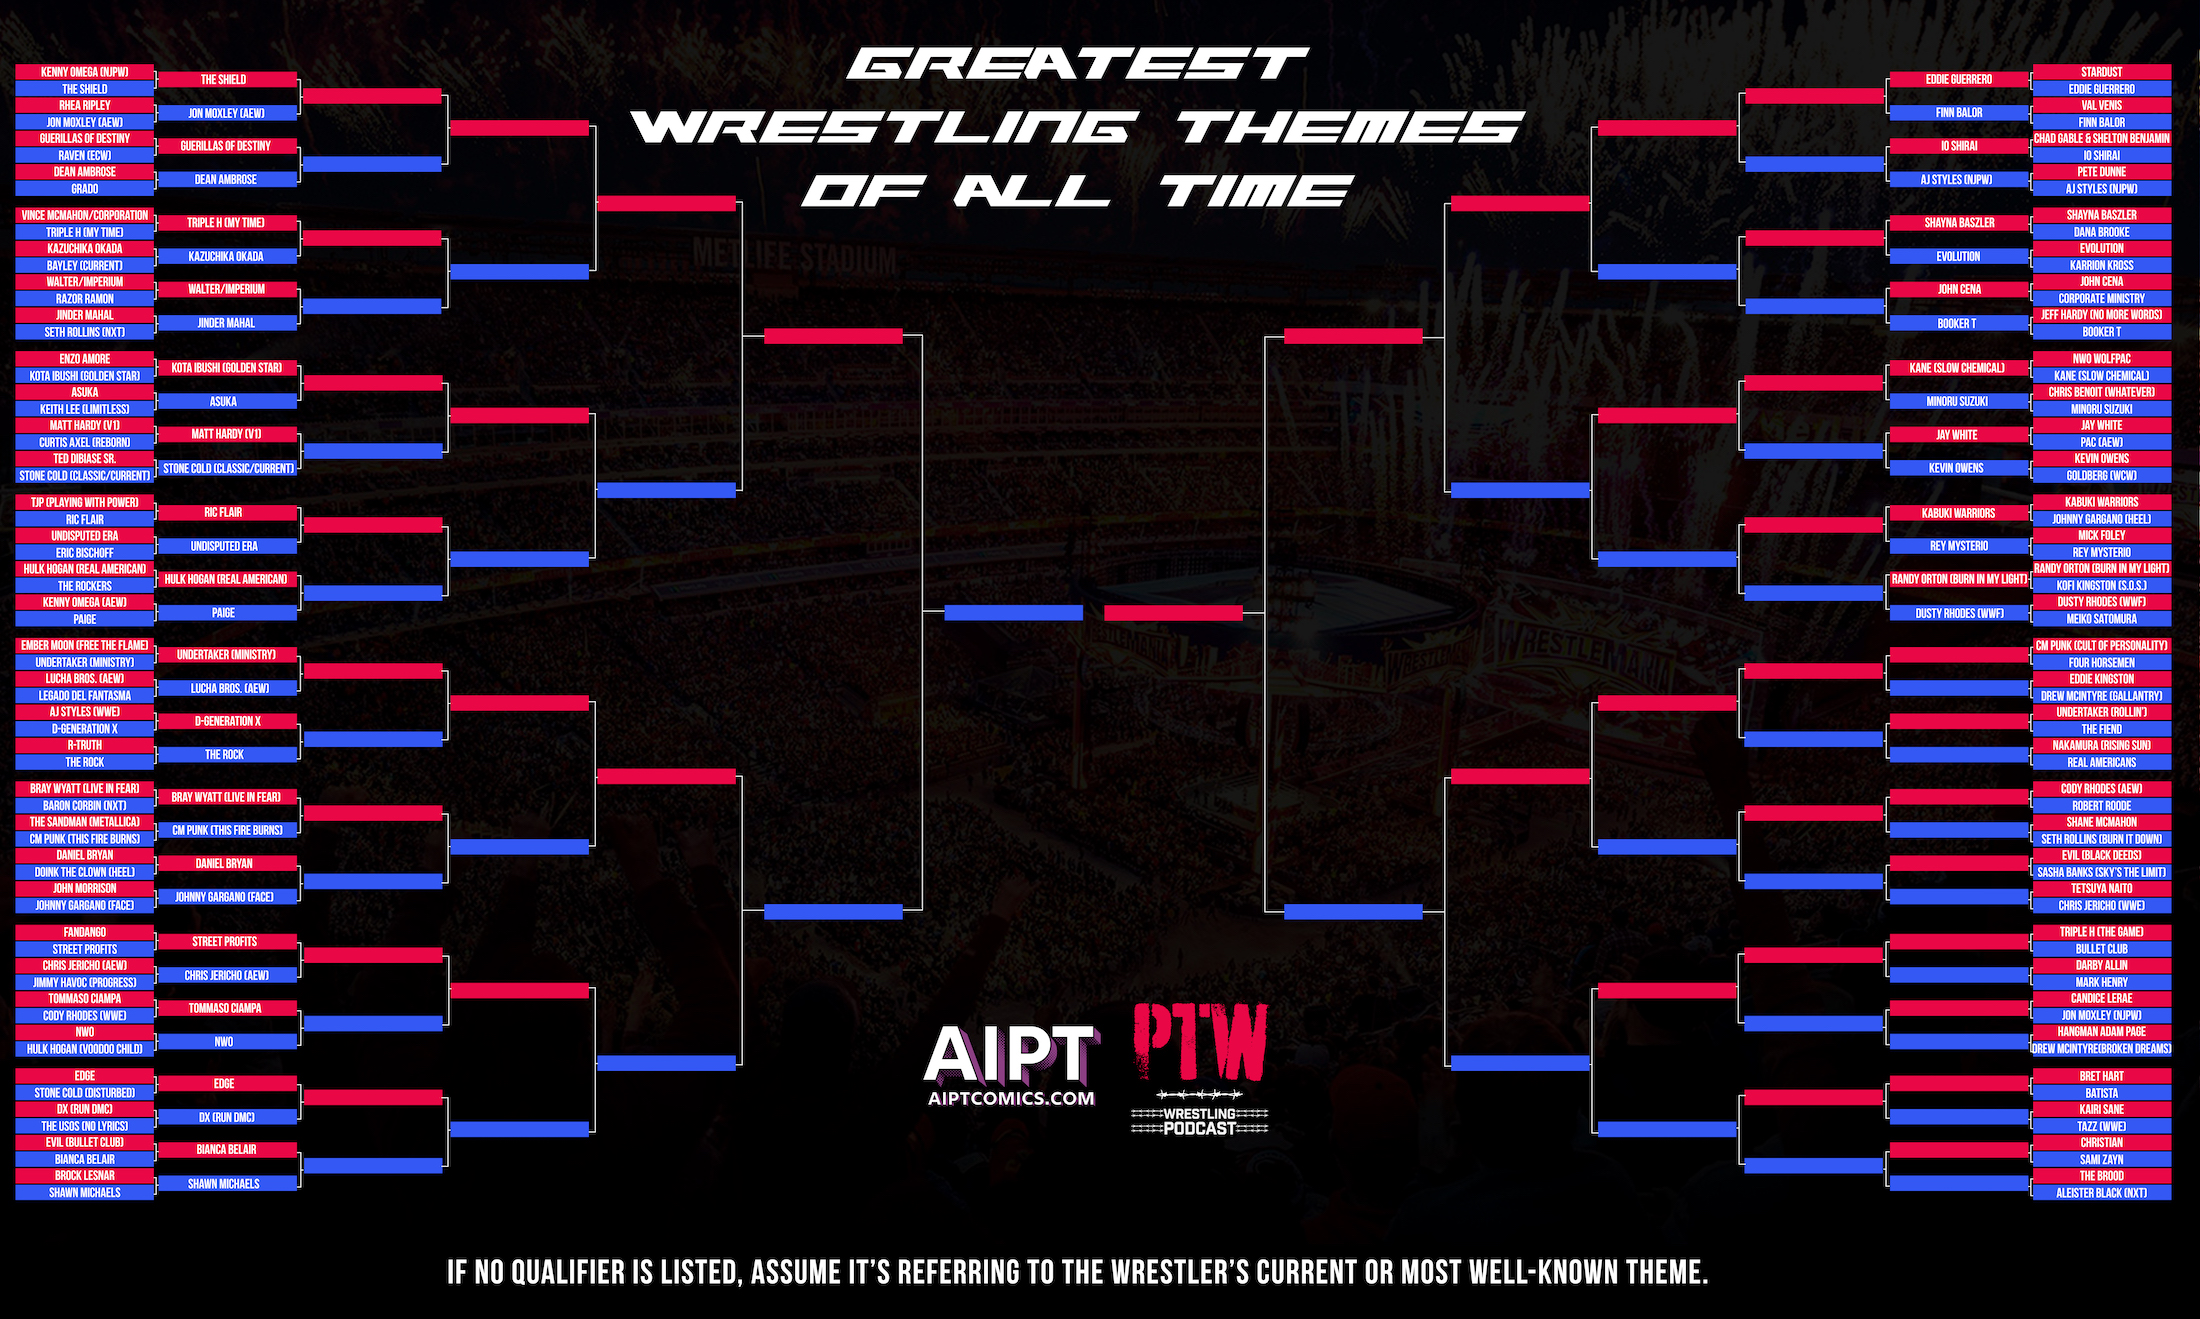 The Greatest Wrestling Themes of All Time: Round 1 C results